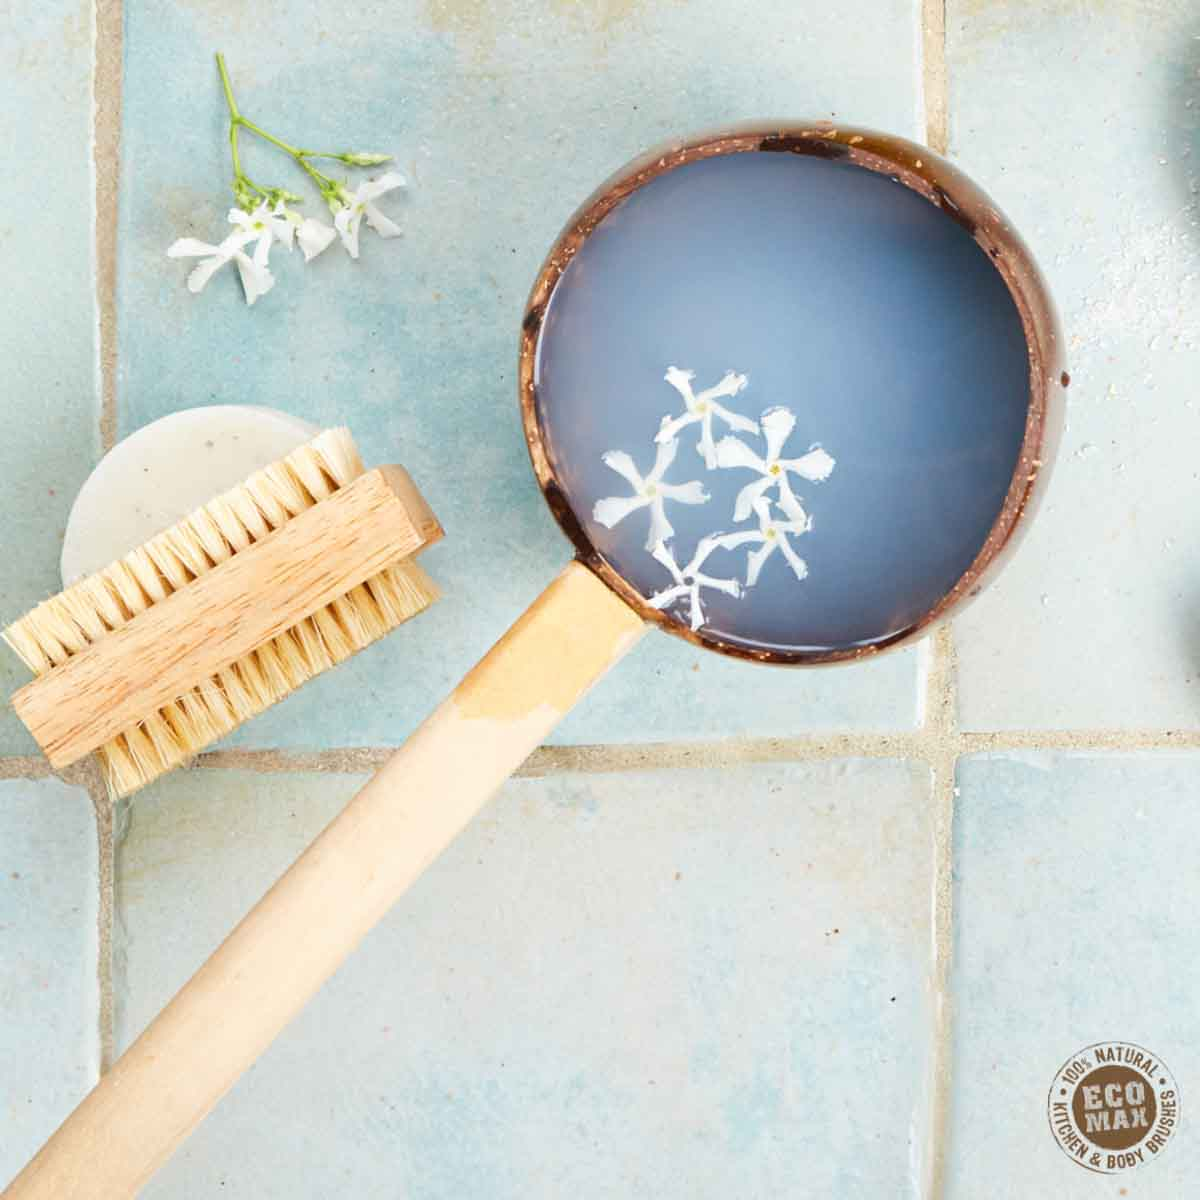 Nail Brush | Sustainable Wood & Vegetable Fibre